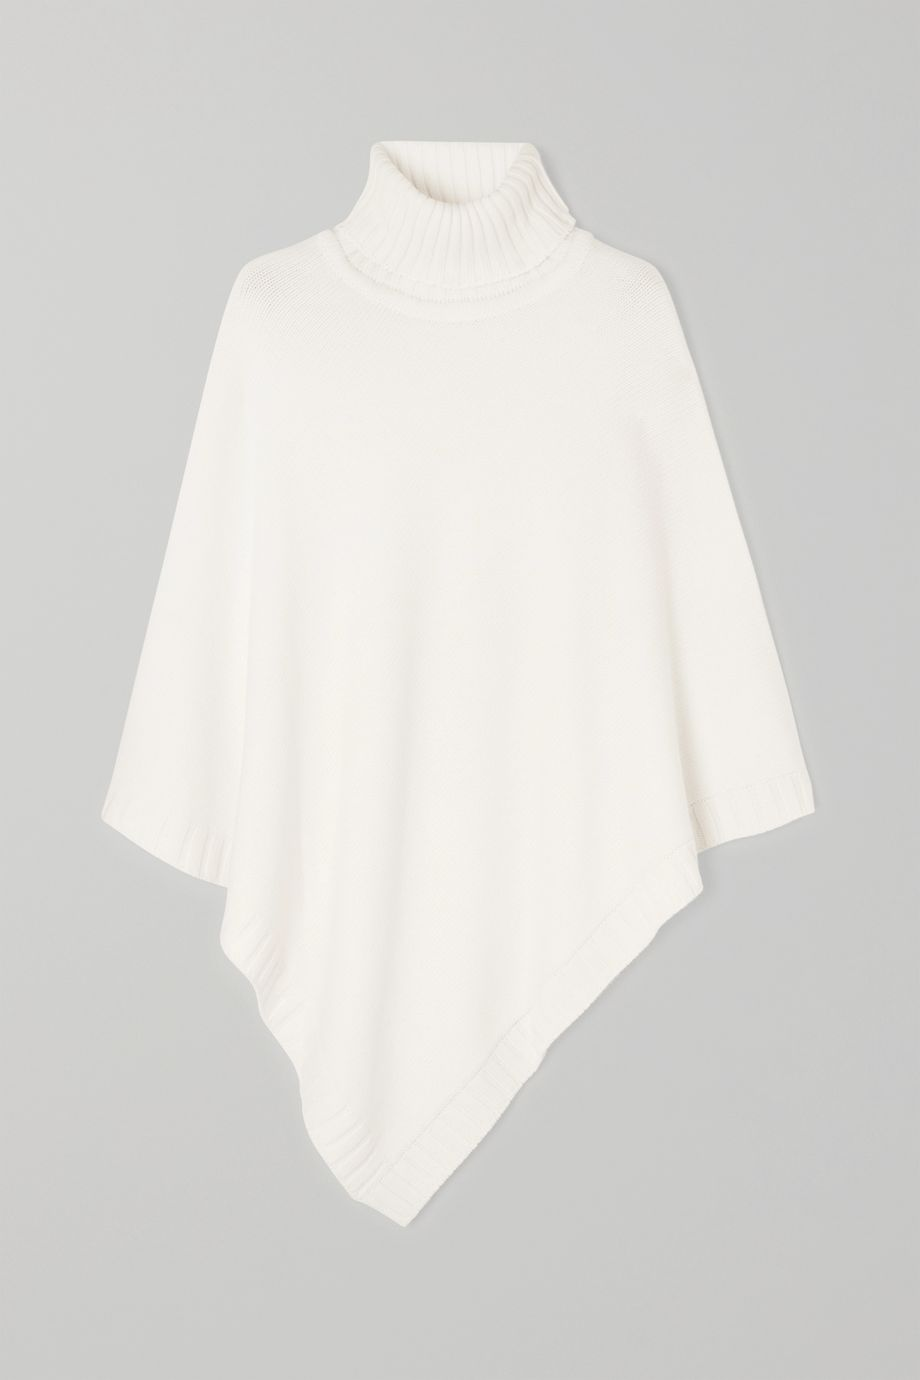 Johnstons of Elgin Cashmere turtleneck poncho